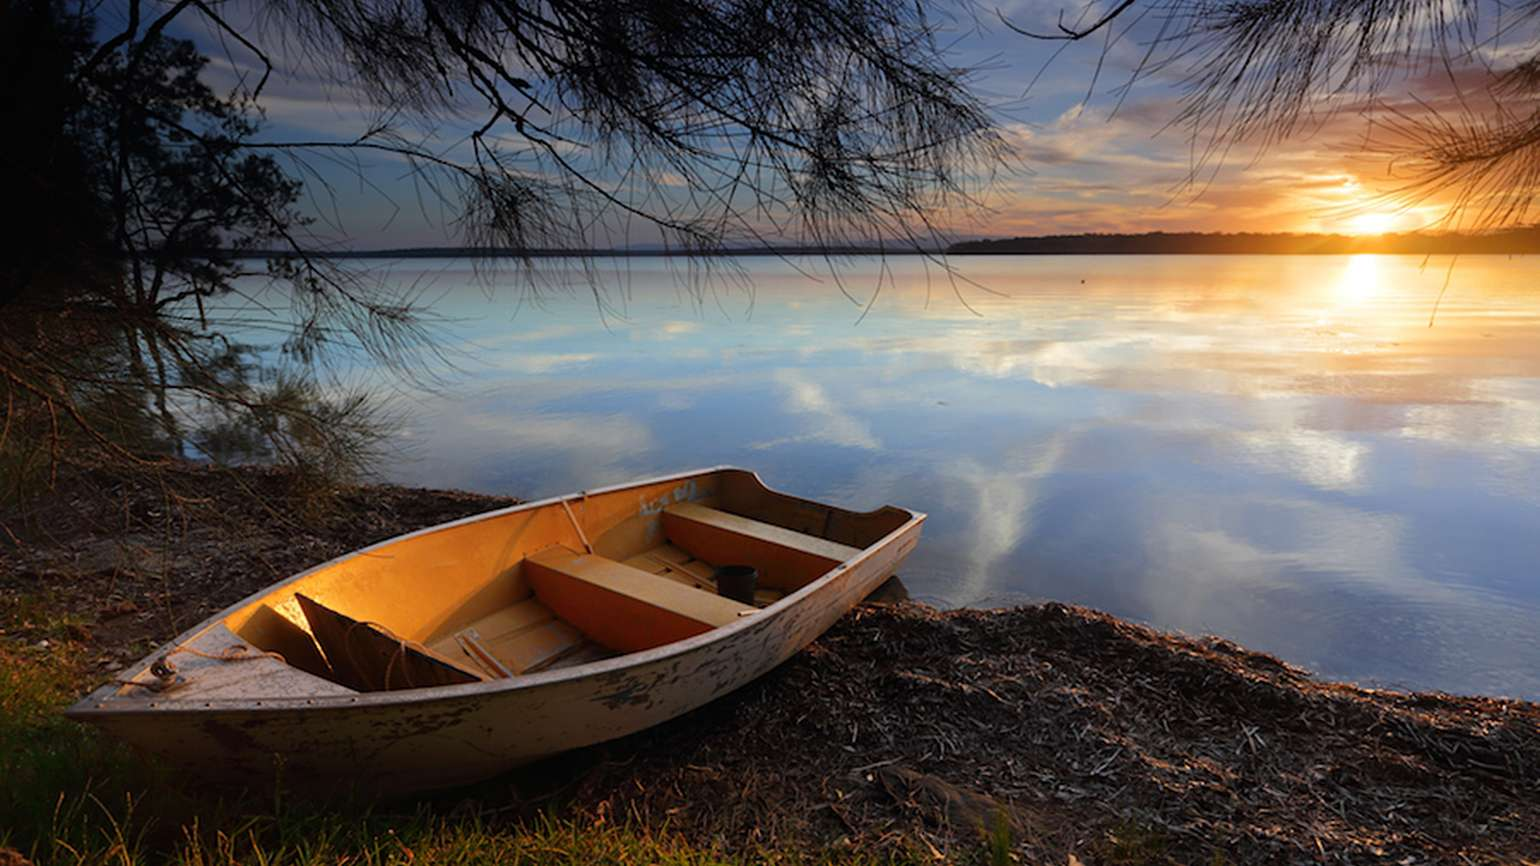 A boat on a lake at sunset